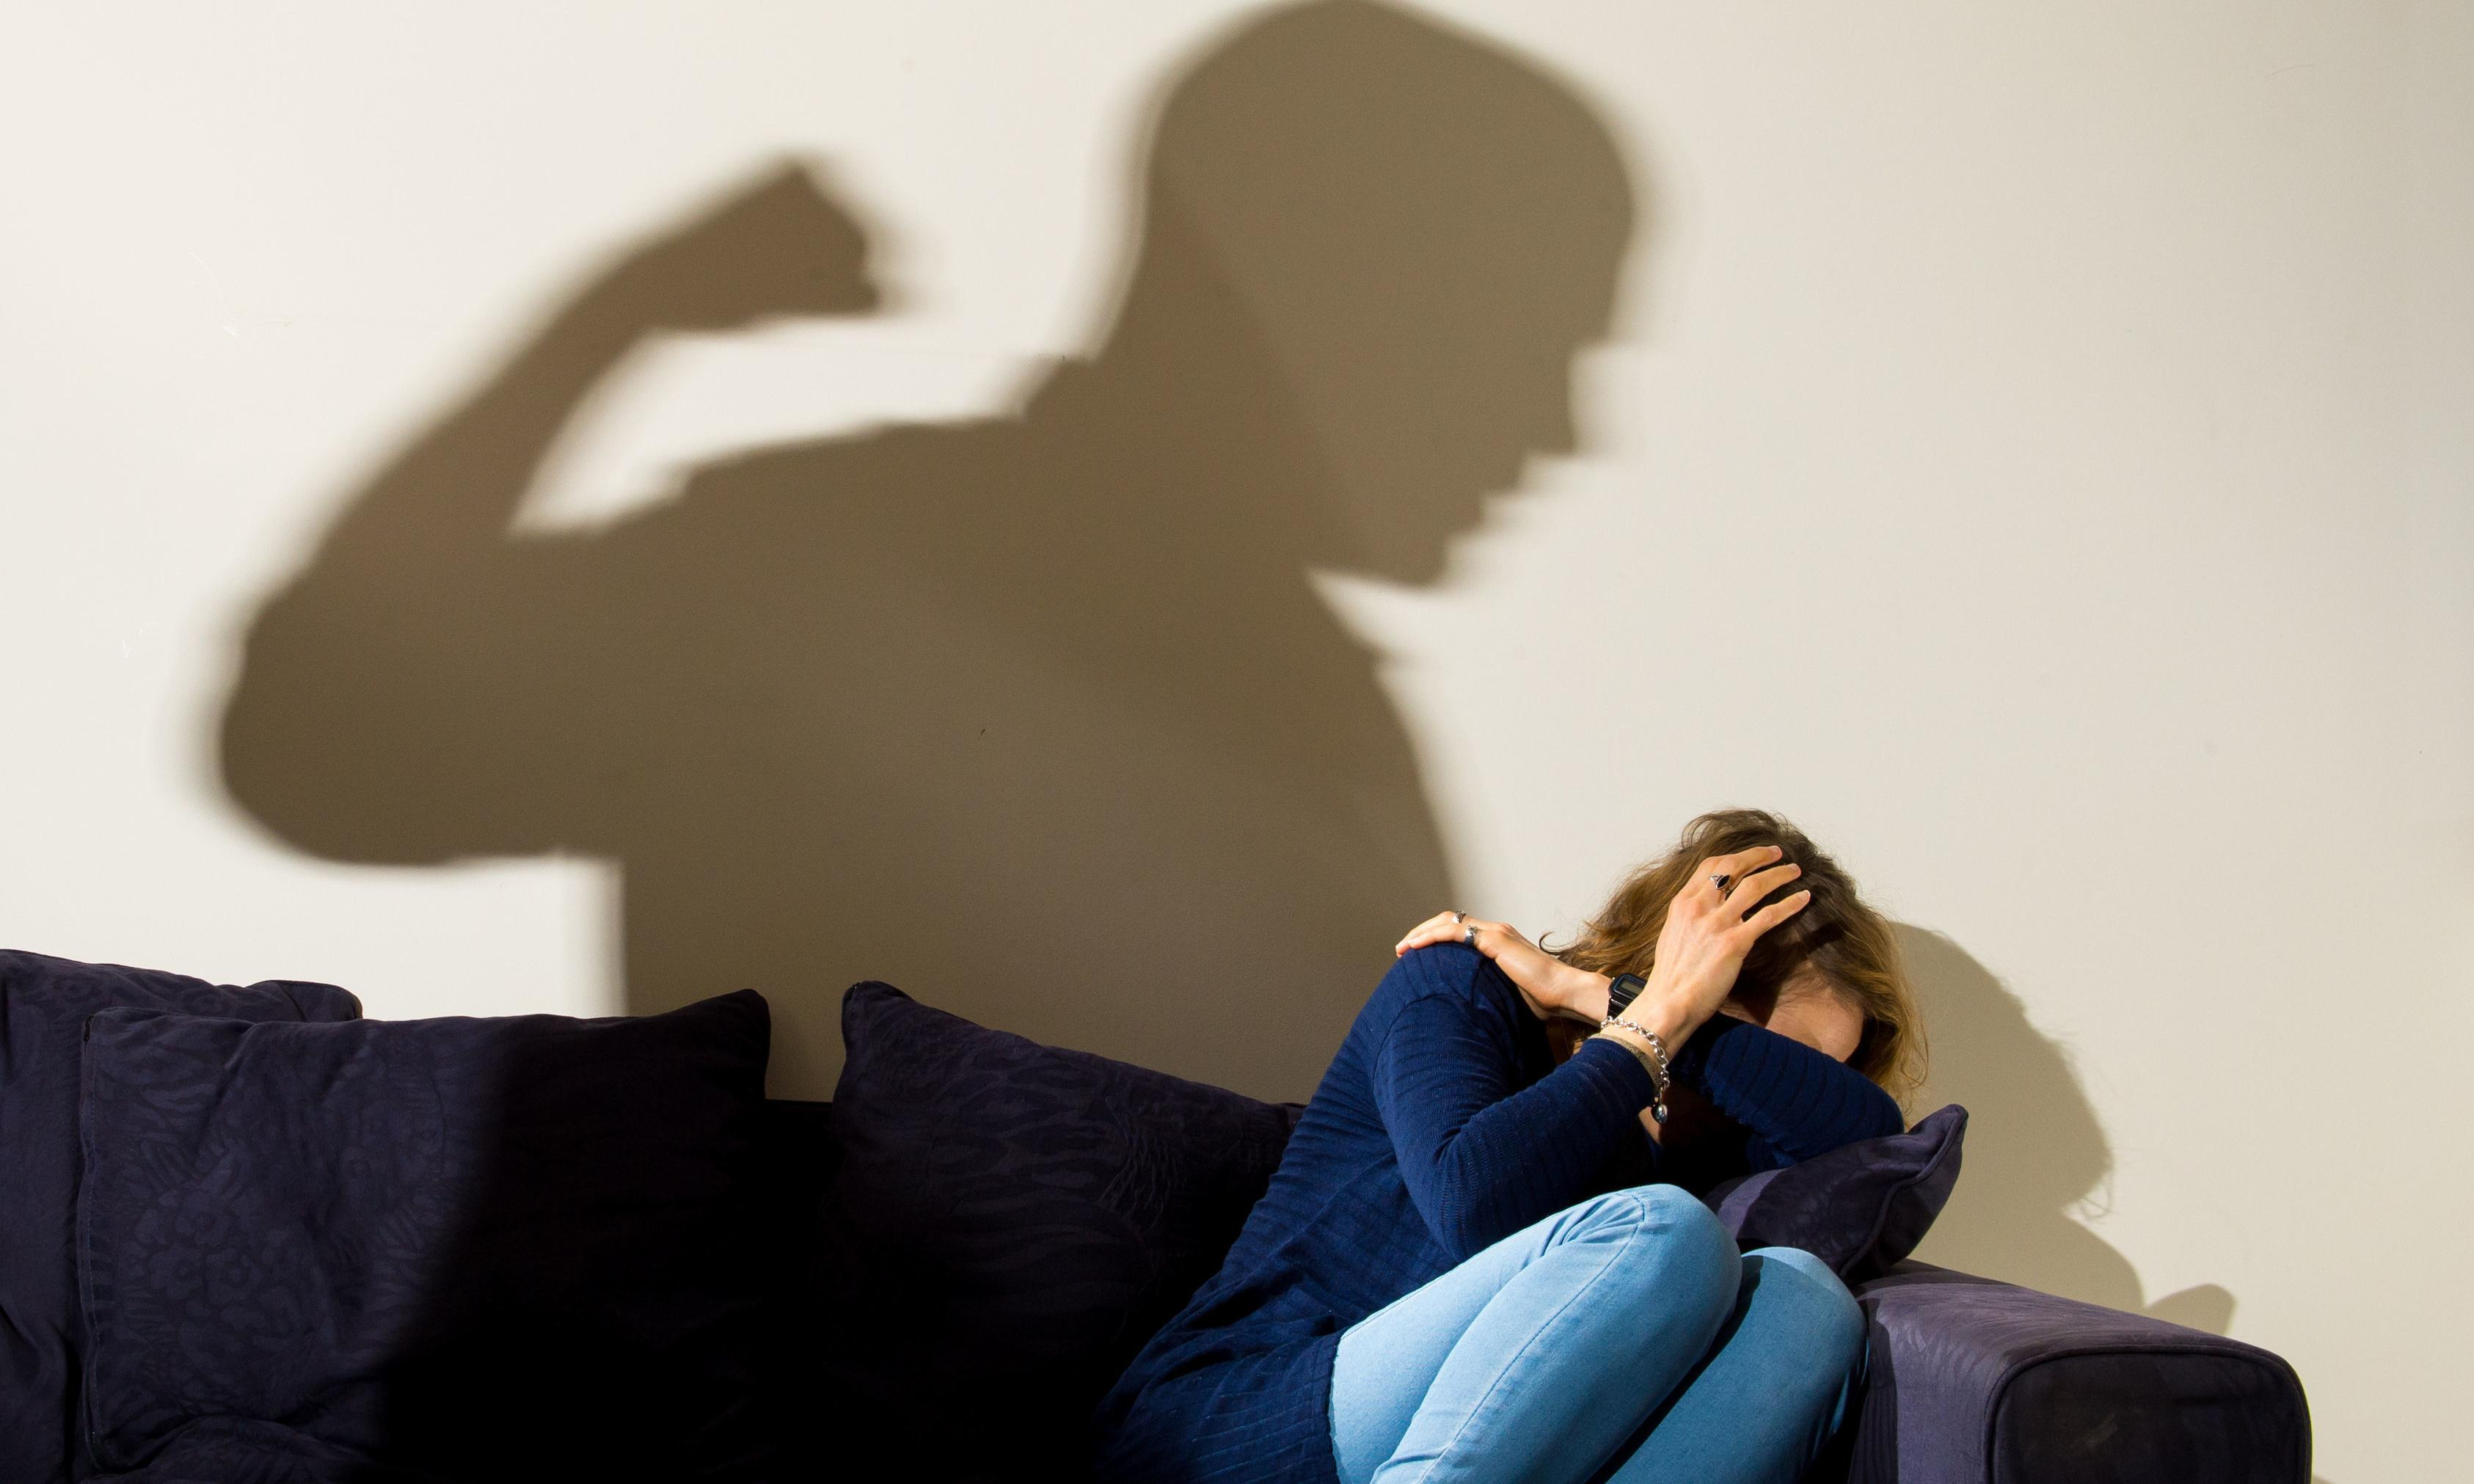 One in seven young Australians say rape justified if women change their mind, study finds